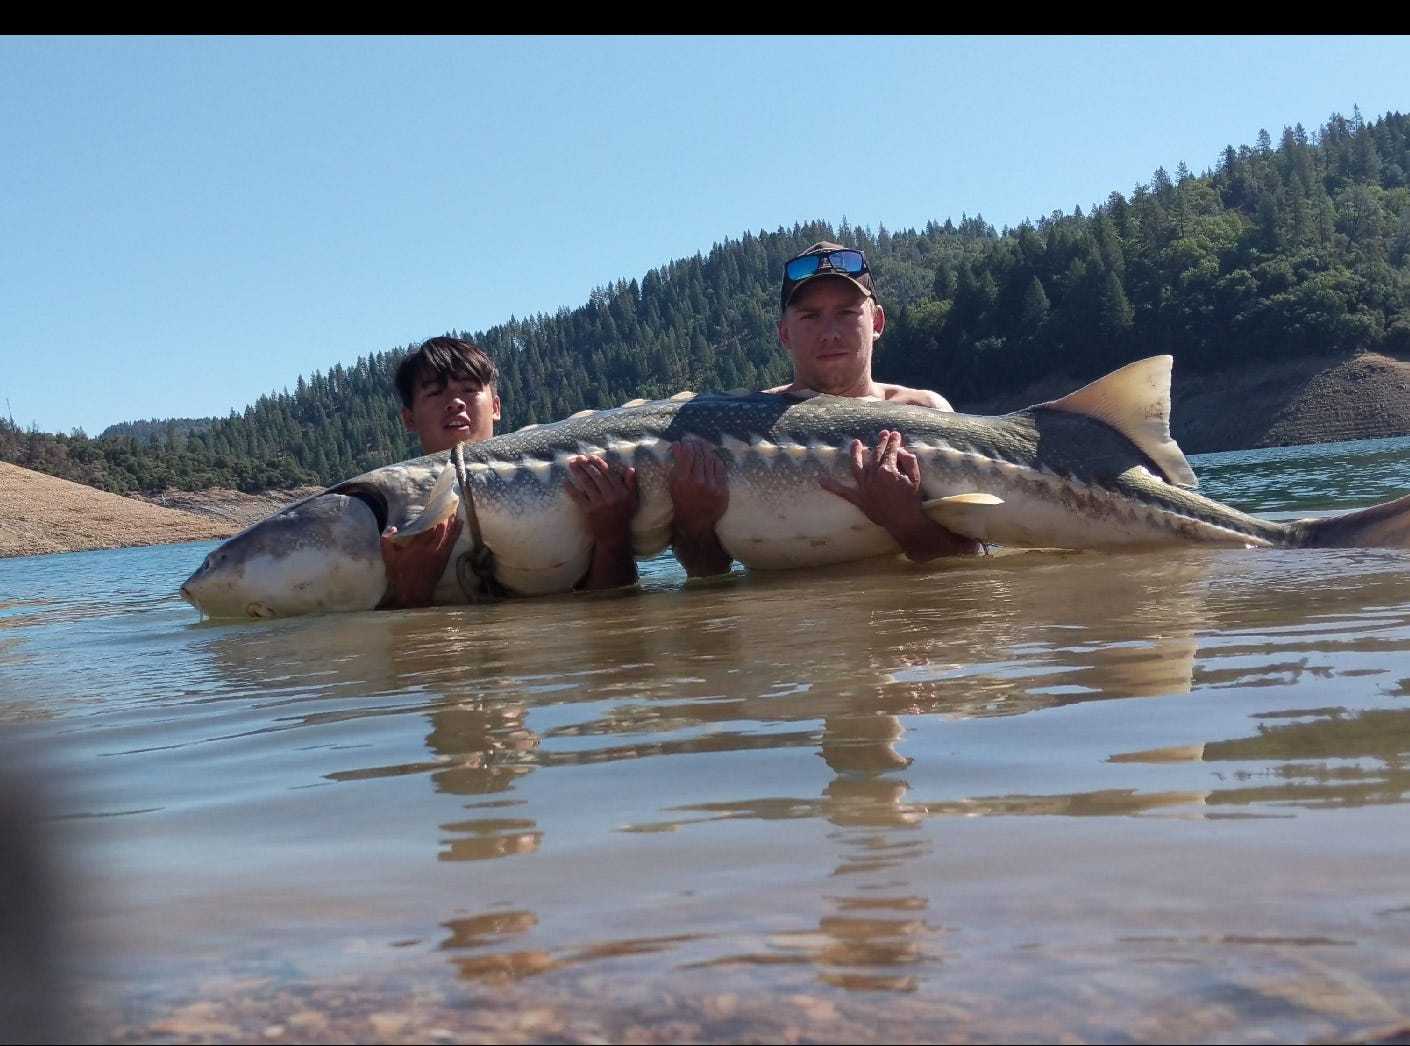 Sou Saephan, left, and Brandon Bartlett hold the 8-foot-long sturgeon they found floating in Lake Shasta on Monday morning, Sept. 17, 2018.